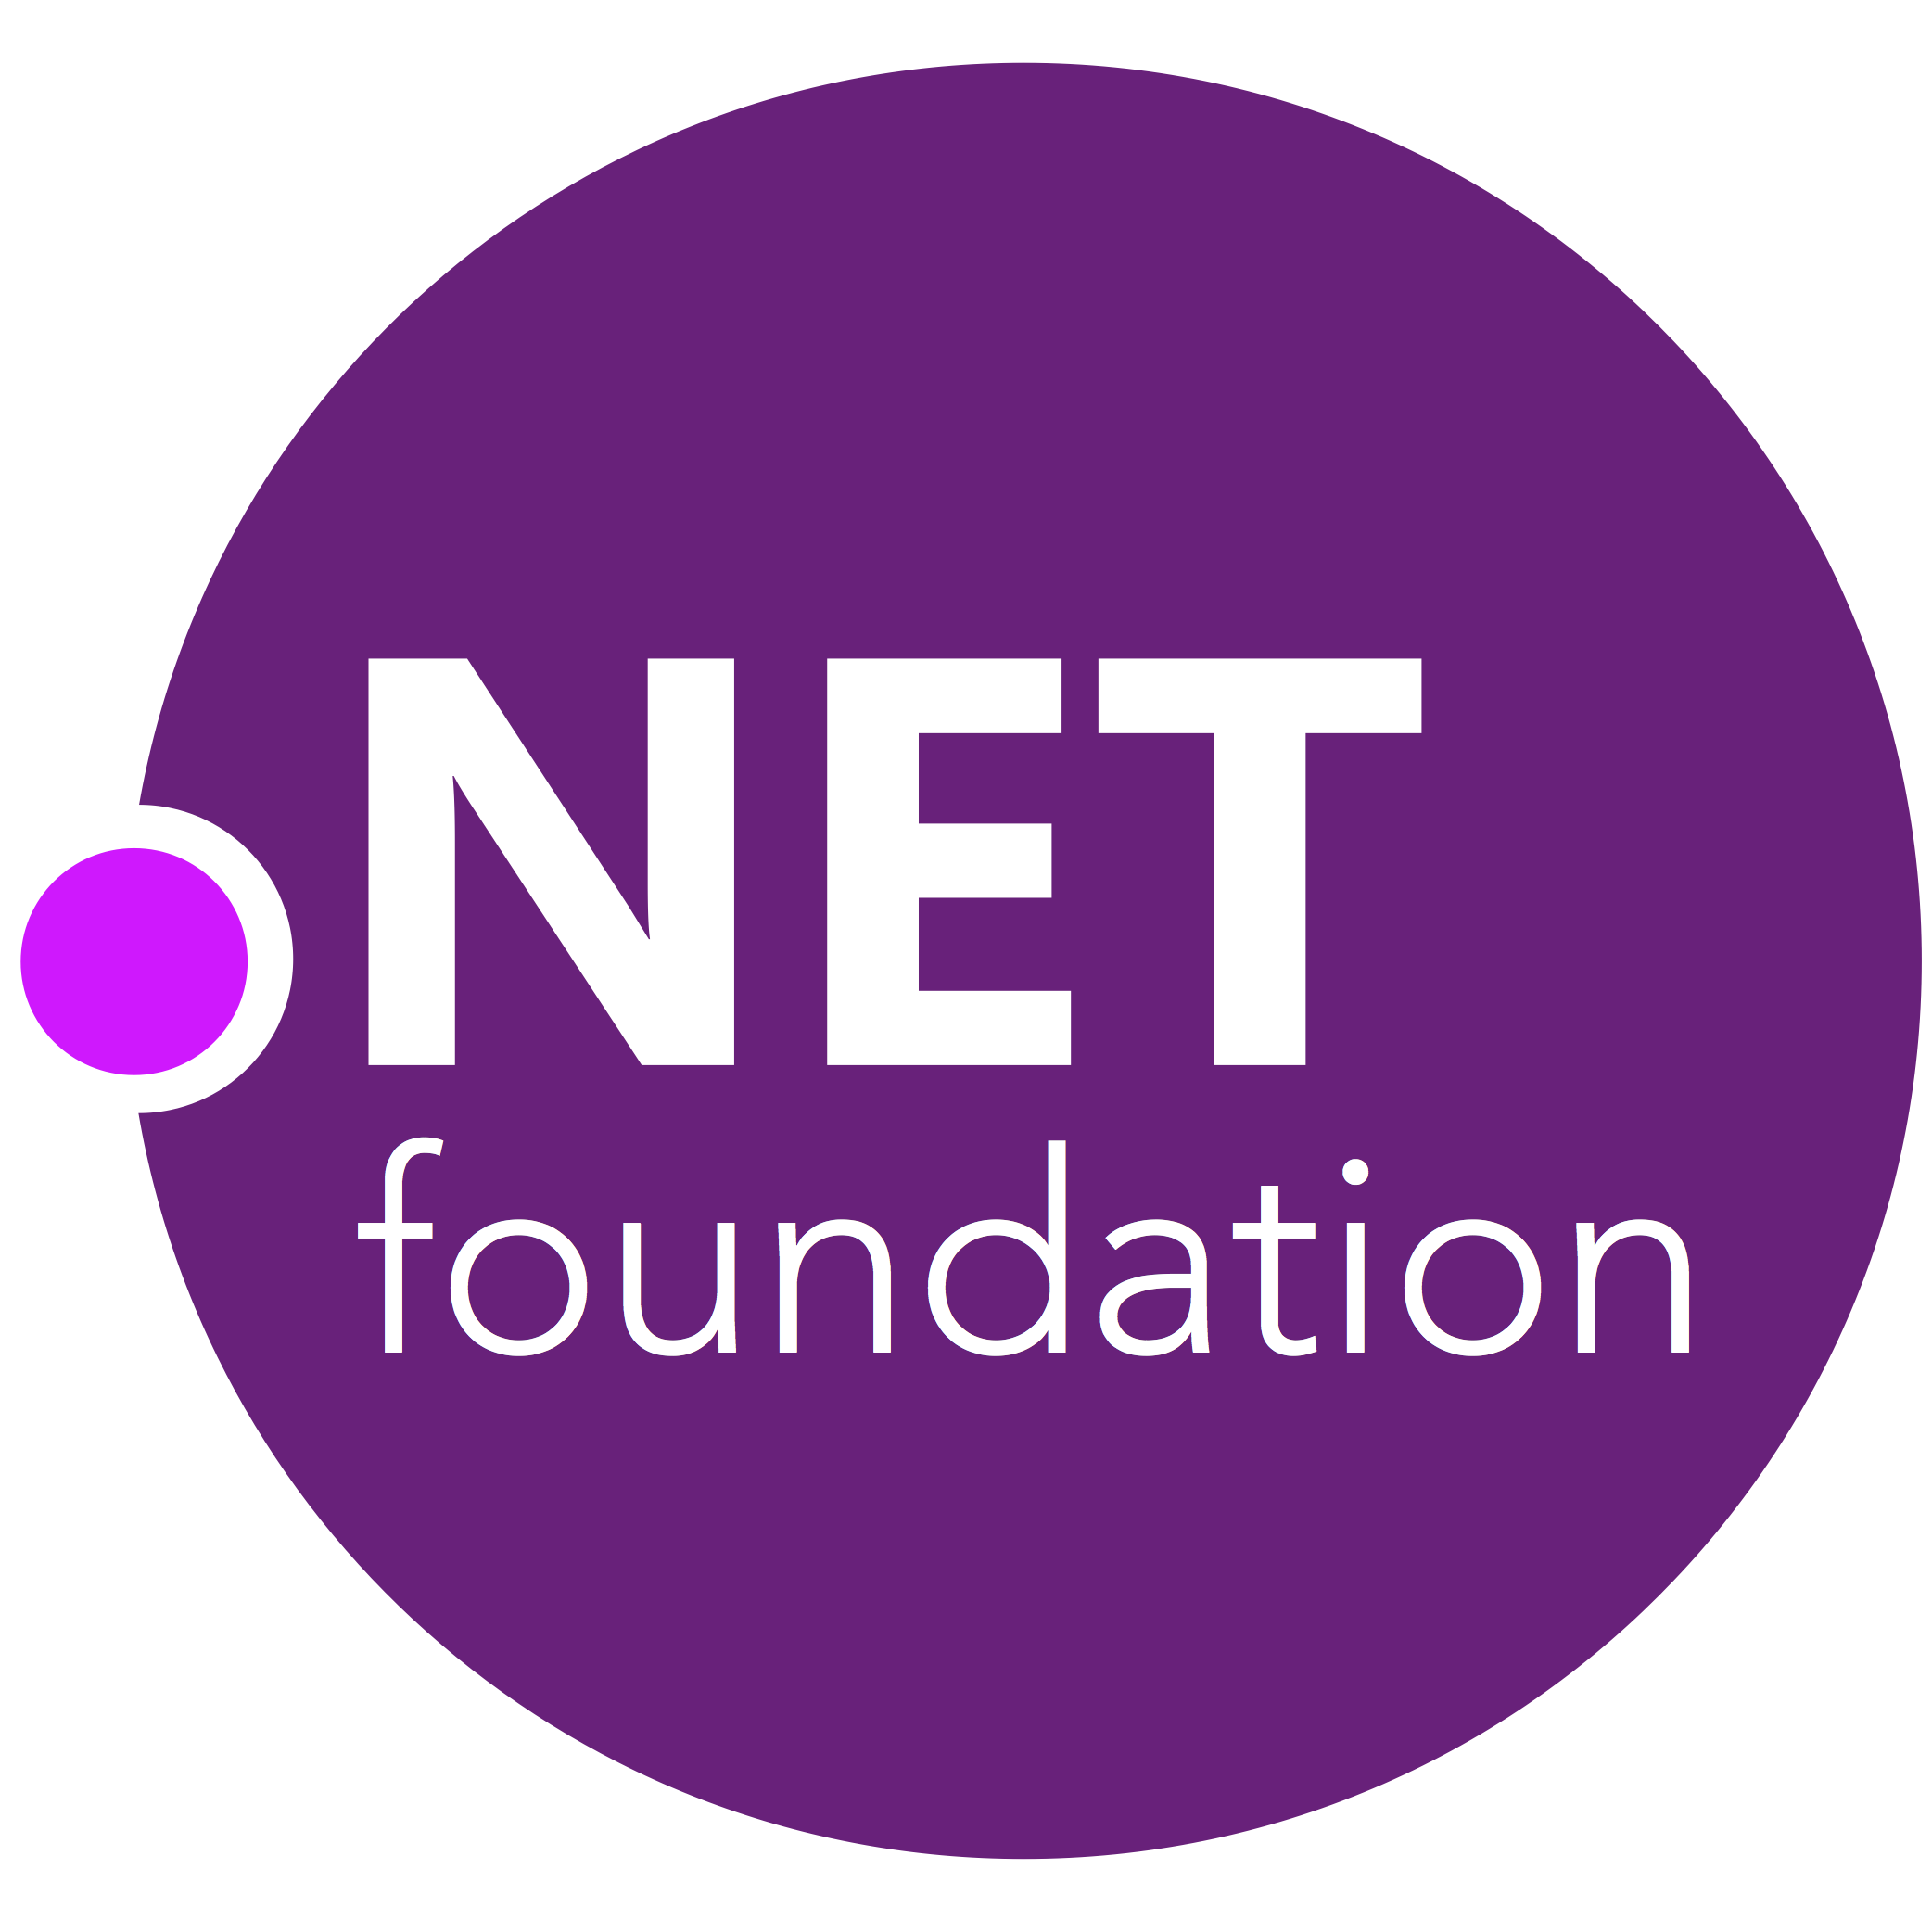 Supported by the .NET Foundation